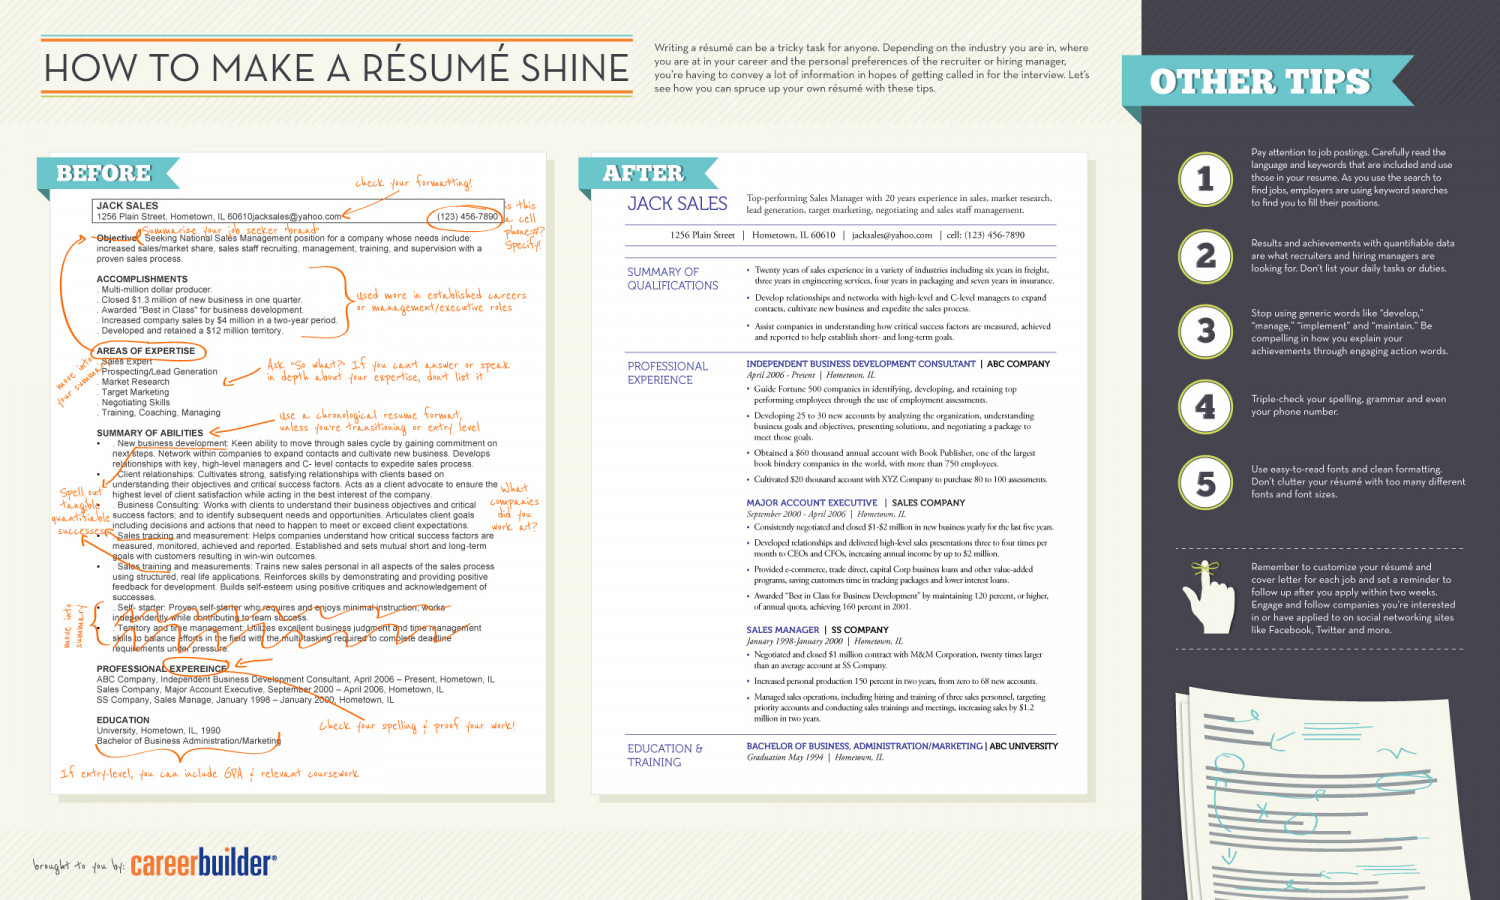 cv resume difference create professional resumes online for free slideshare - Help Making A Resume For Free